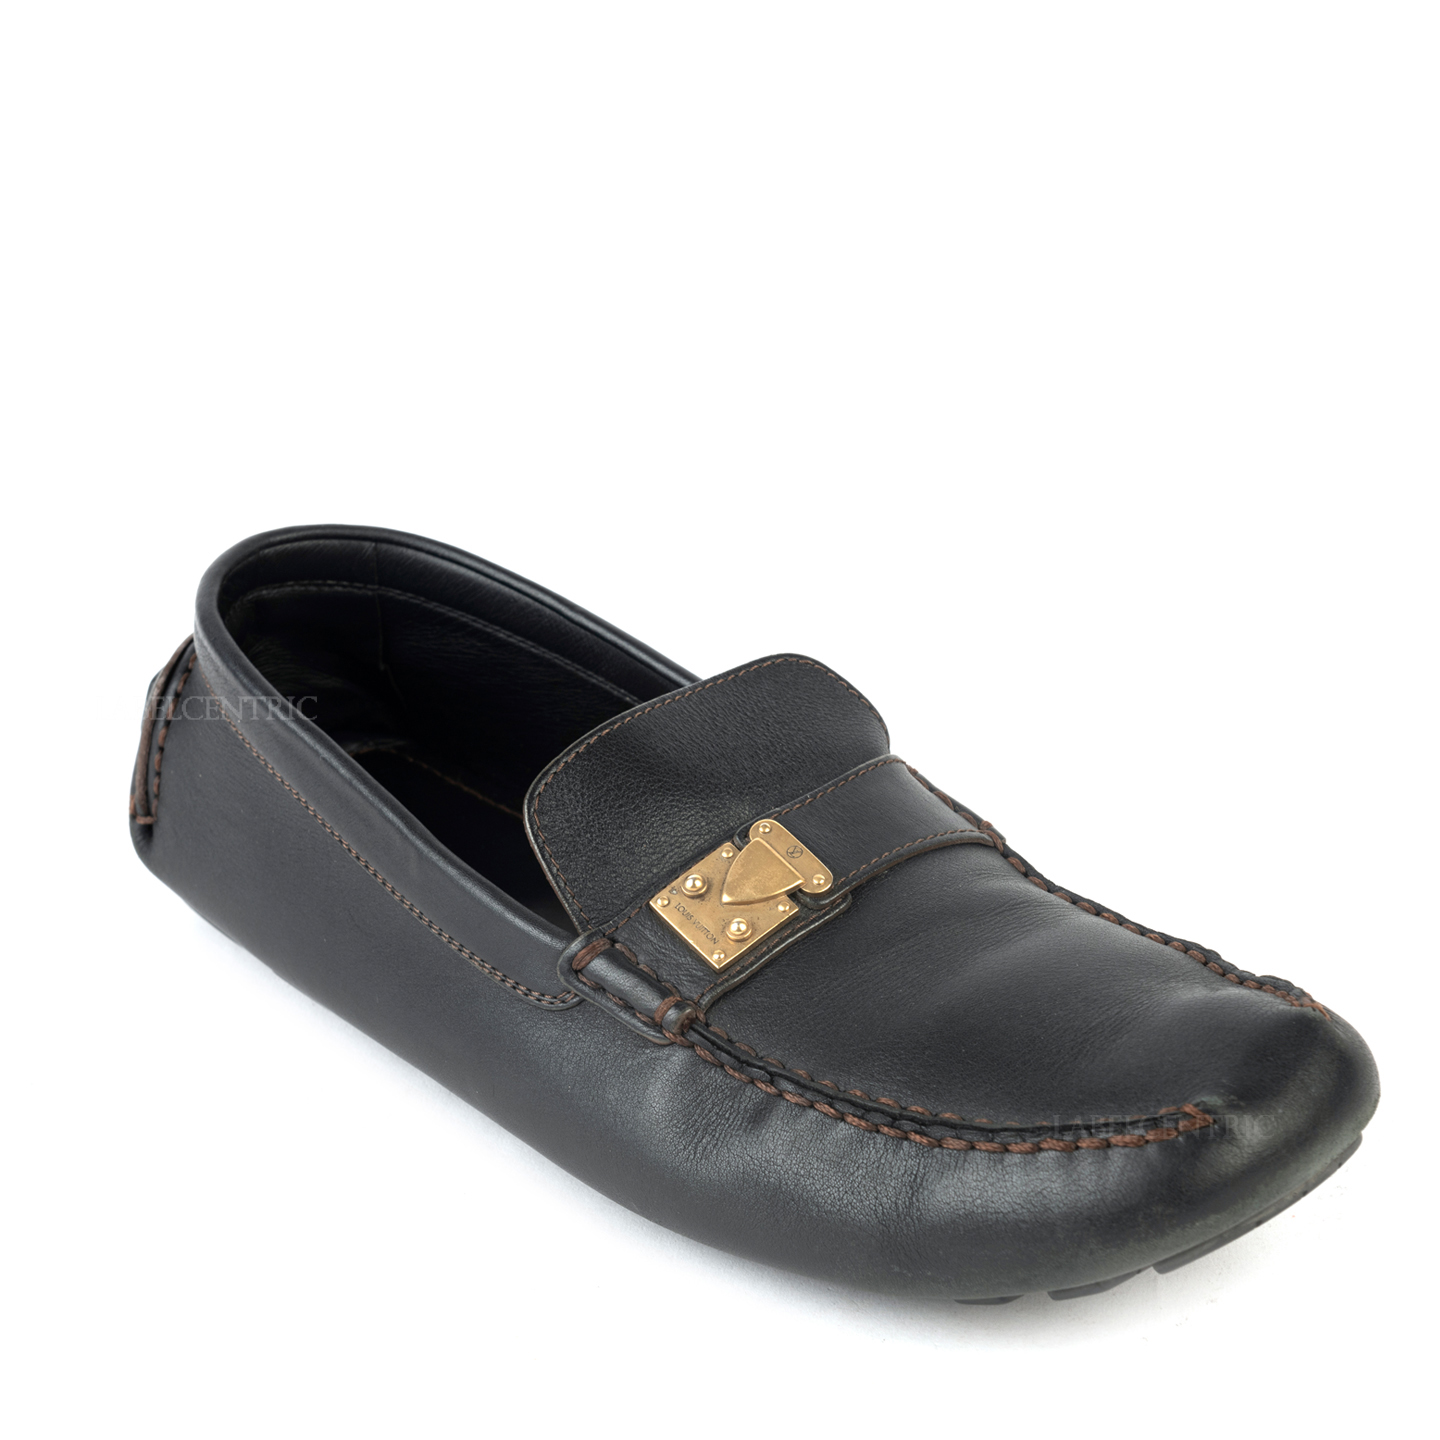 Louis Vuitton Black Leather Lombok Driving Loafers